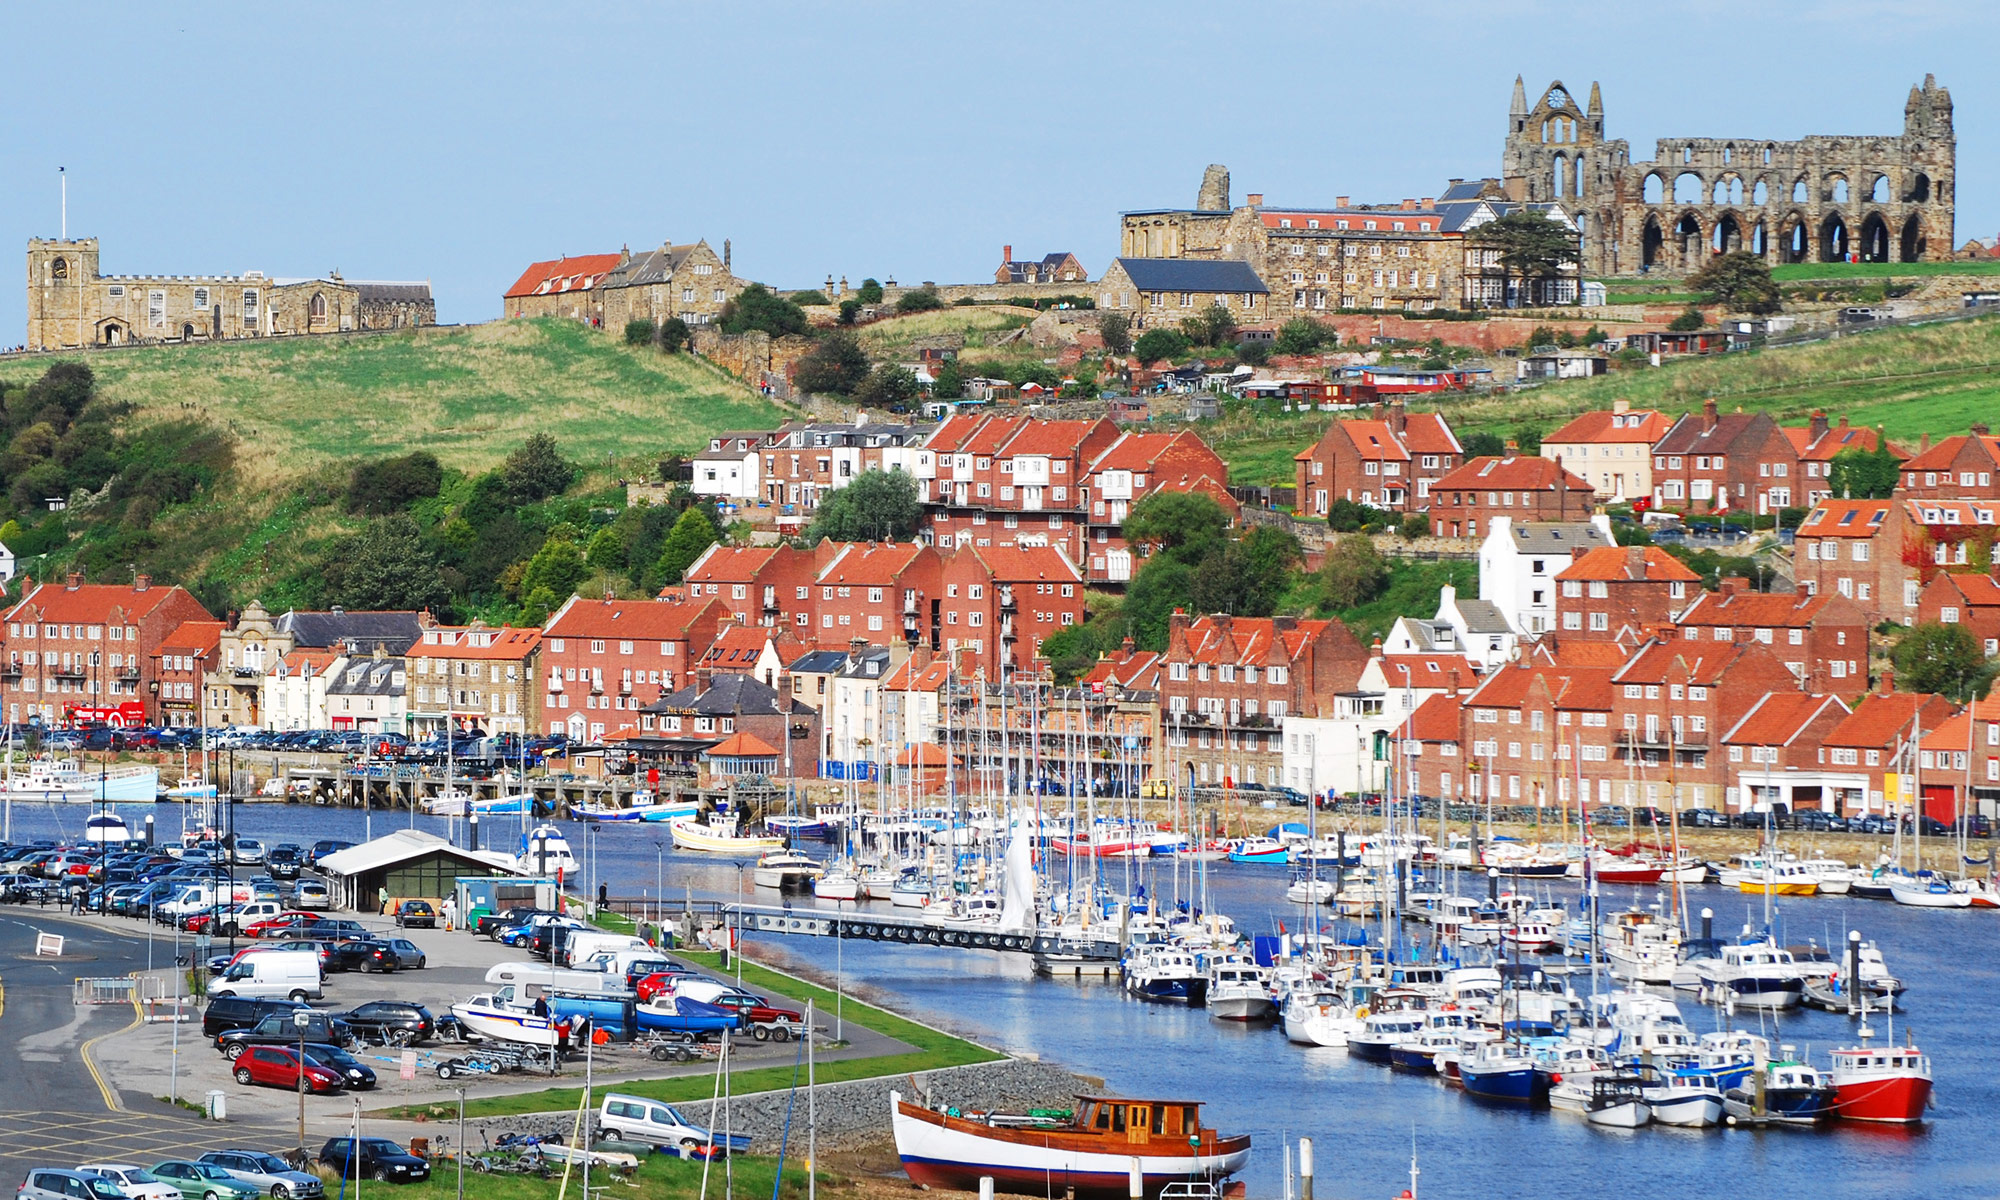 DP_2833077_Whitby-Harbour-and-Abbey-North-Yorkshire-2000x1200